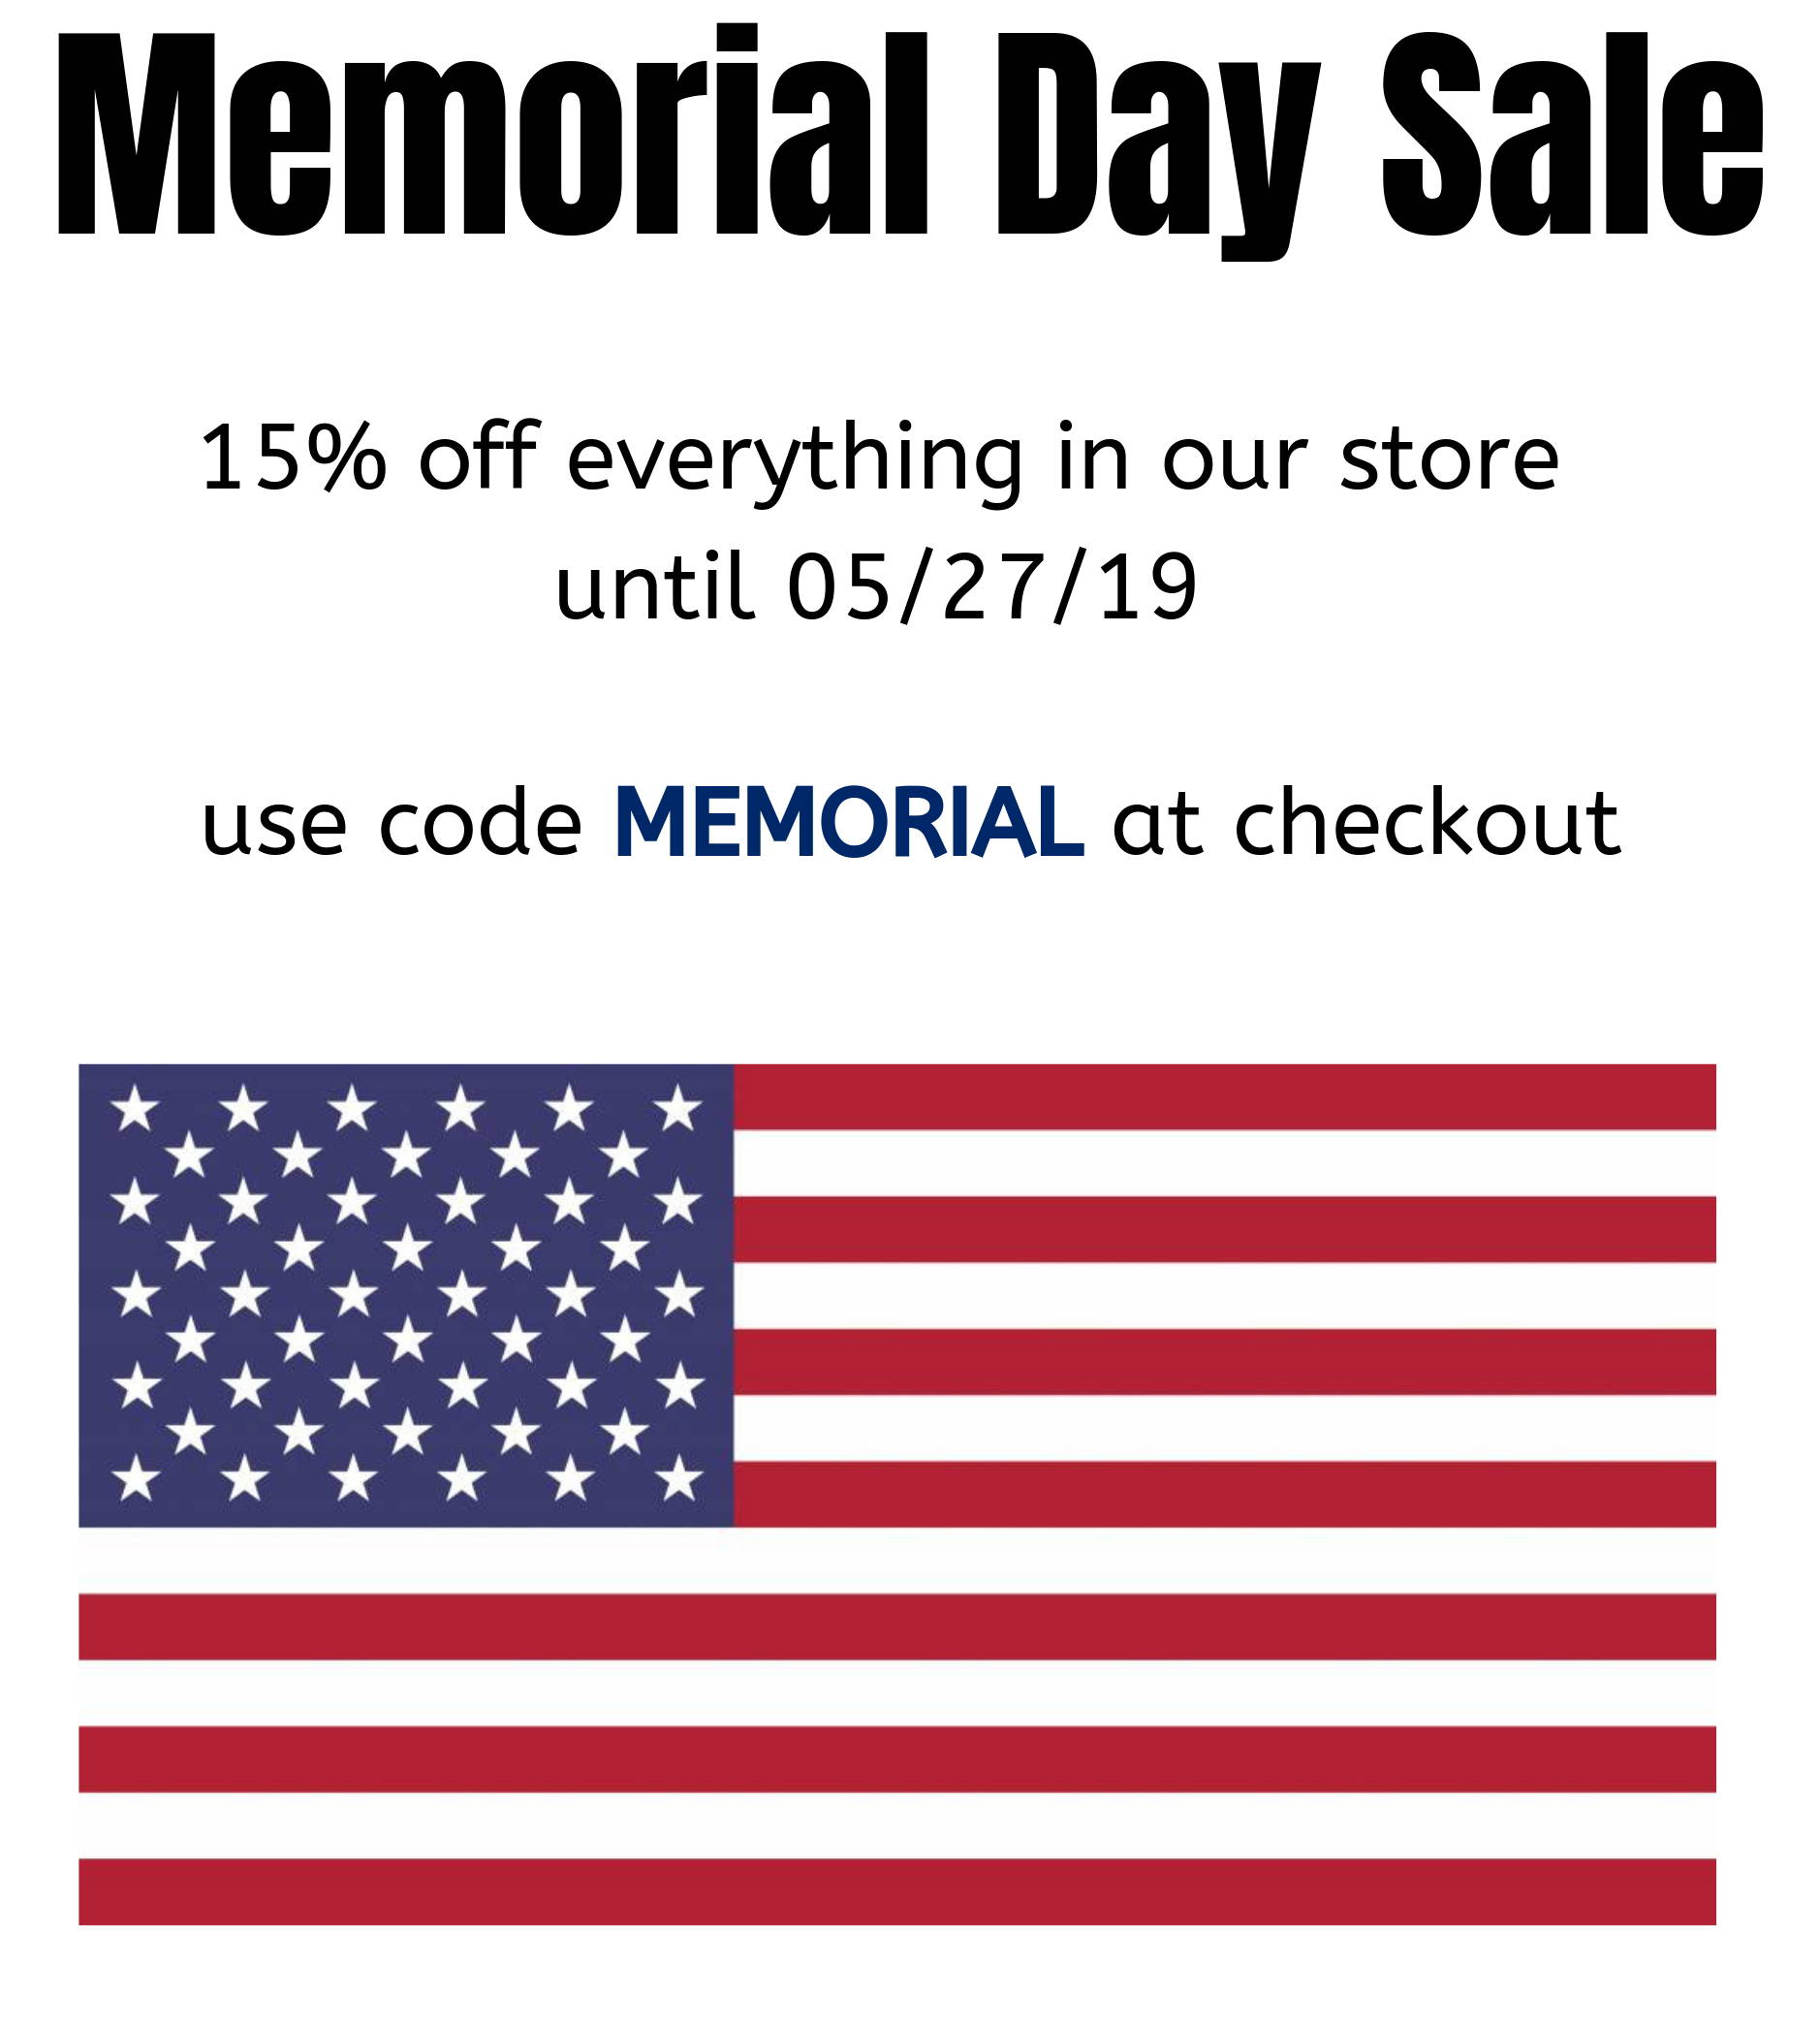 Memorial Day Sale. 15% off everything in our store until 05/27/19. Use code MEMORIAL at checkout